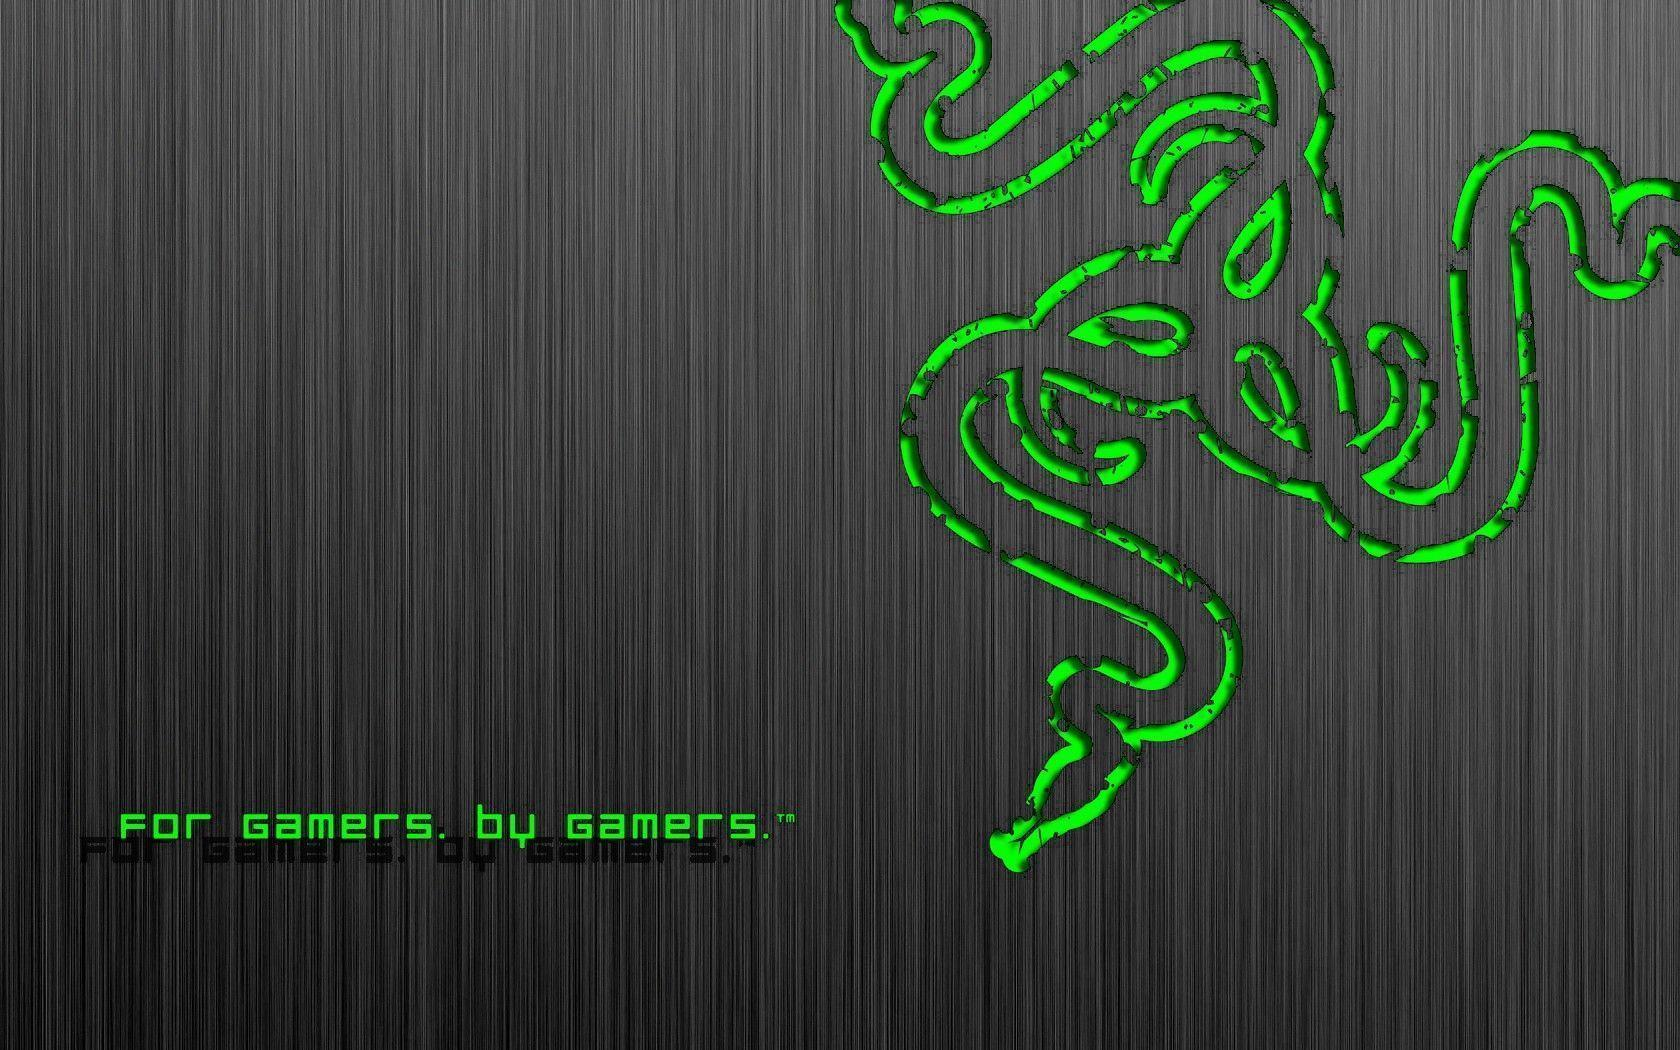 Razer iphone backgrounds wallpaper cave - Iphone wallpapers for gamers ...